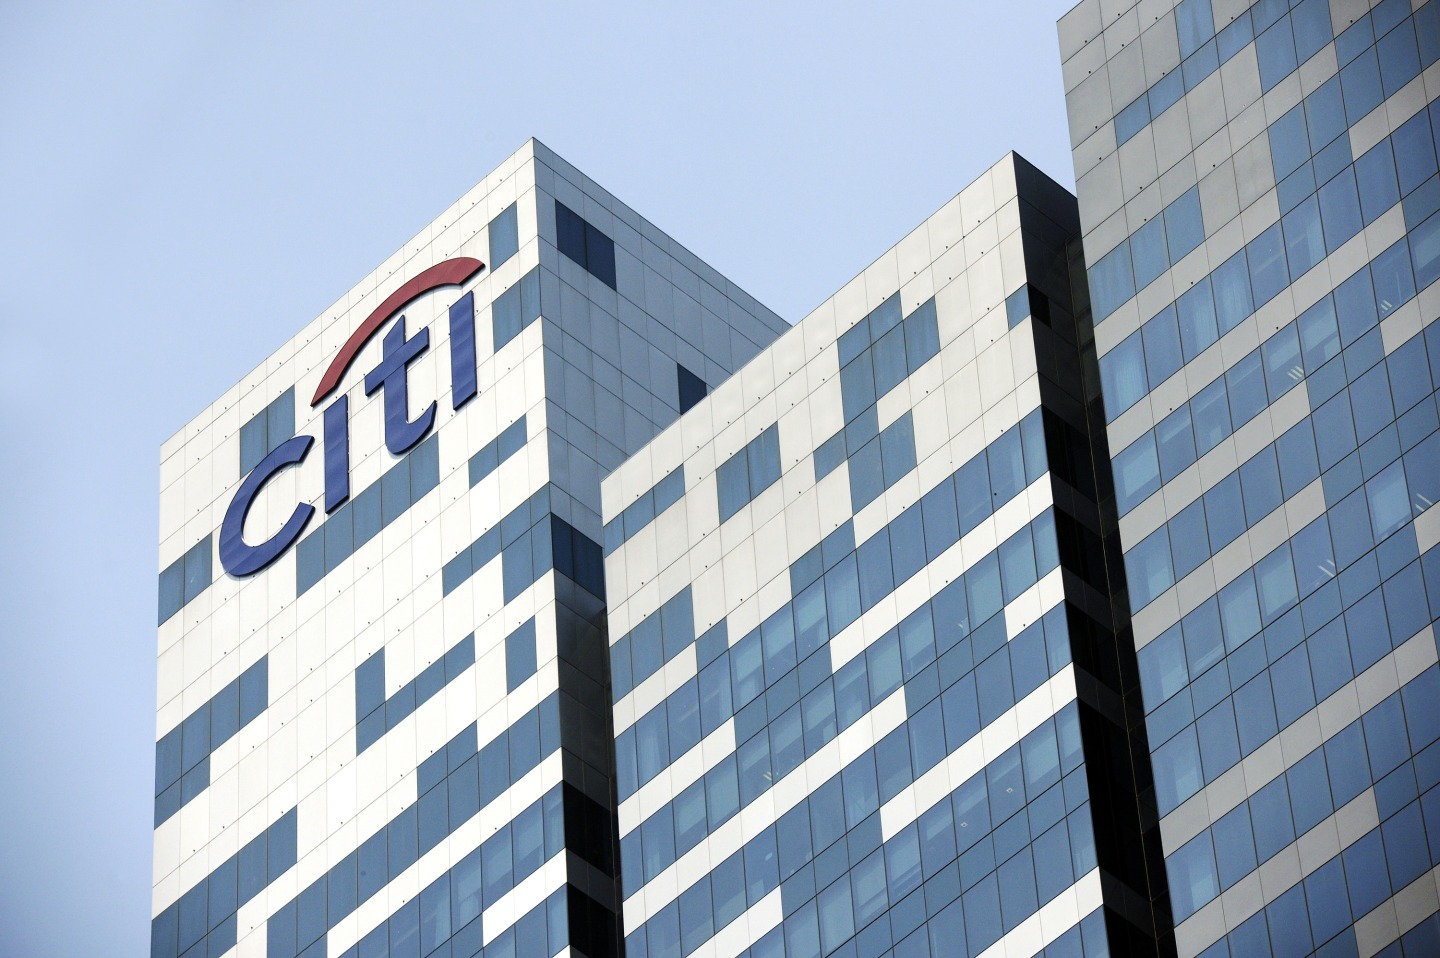 The Citigroup Inc. logo is displayed atop Tower 1 of Asia Square in Singapore.